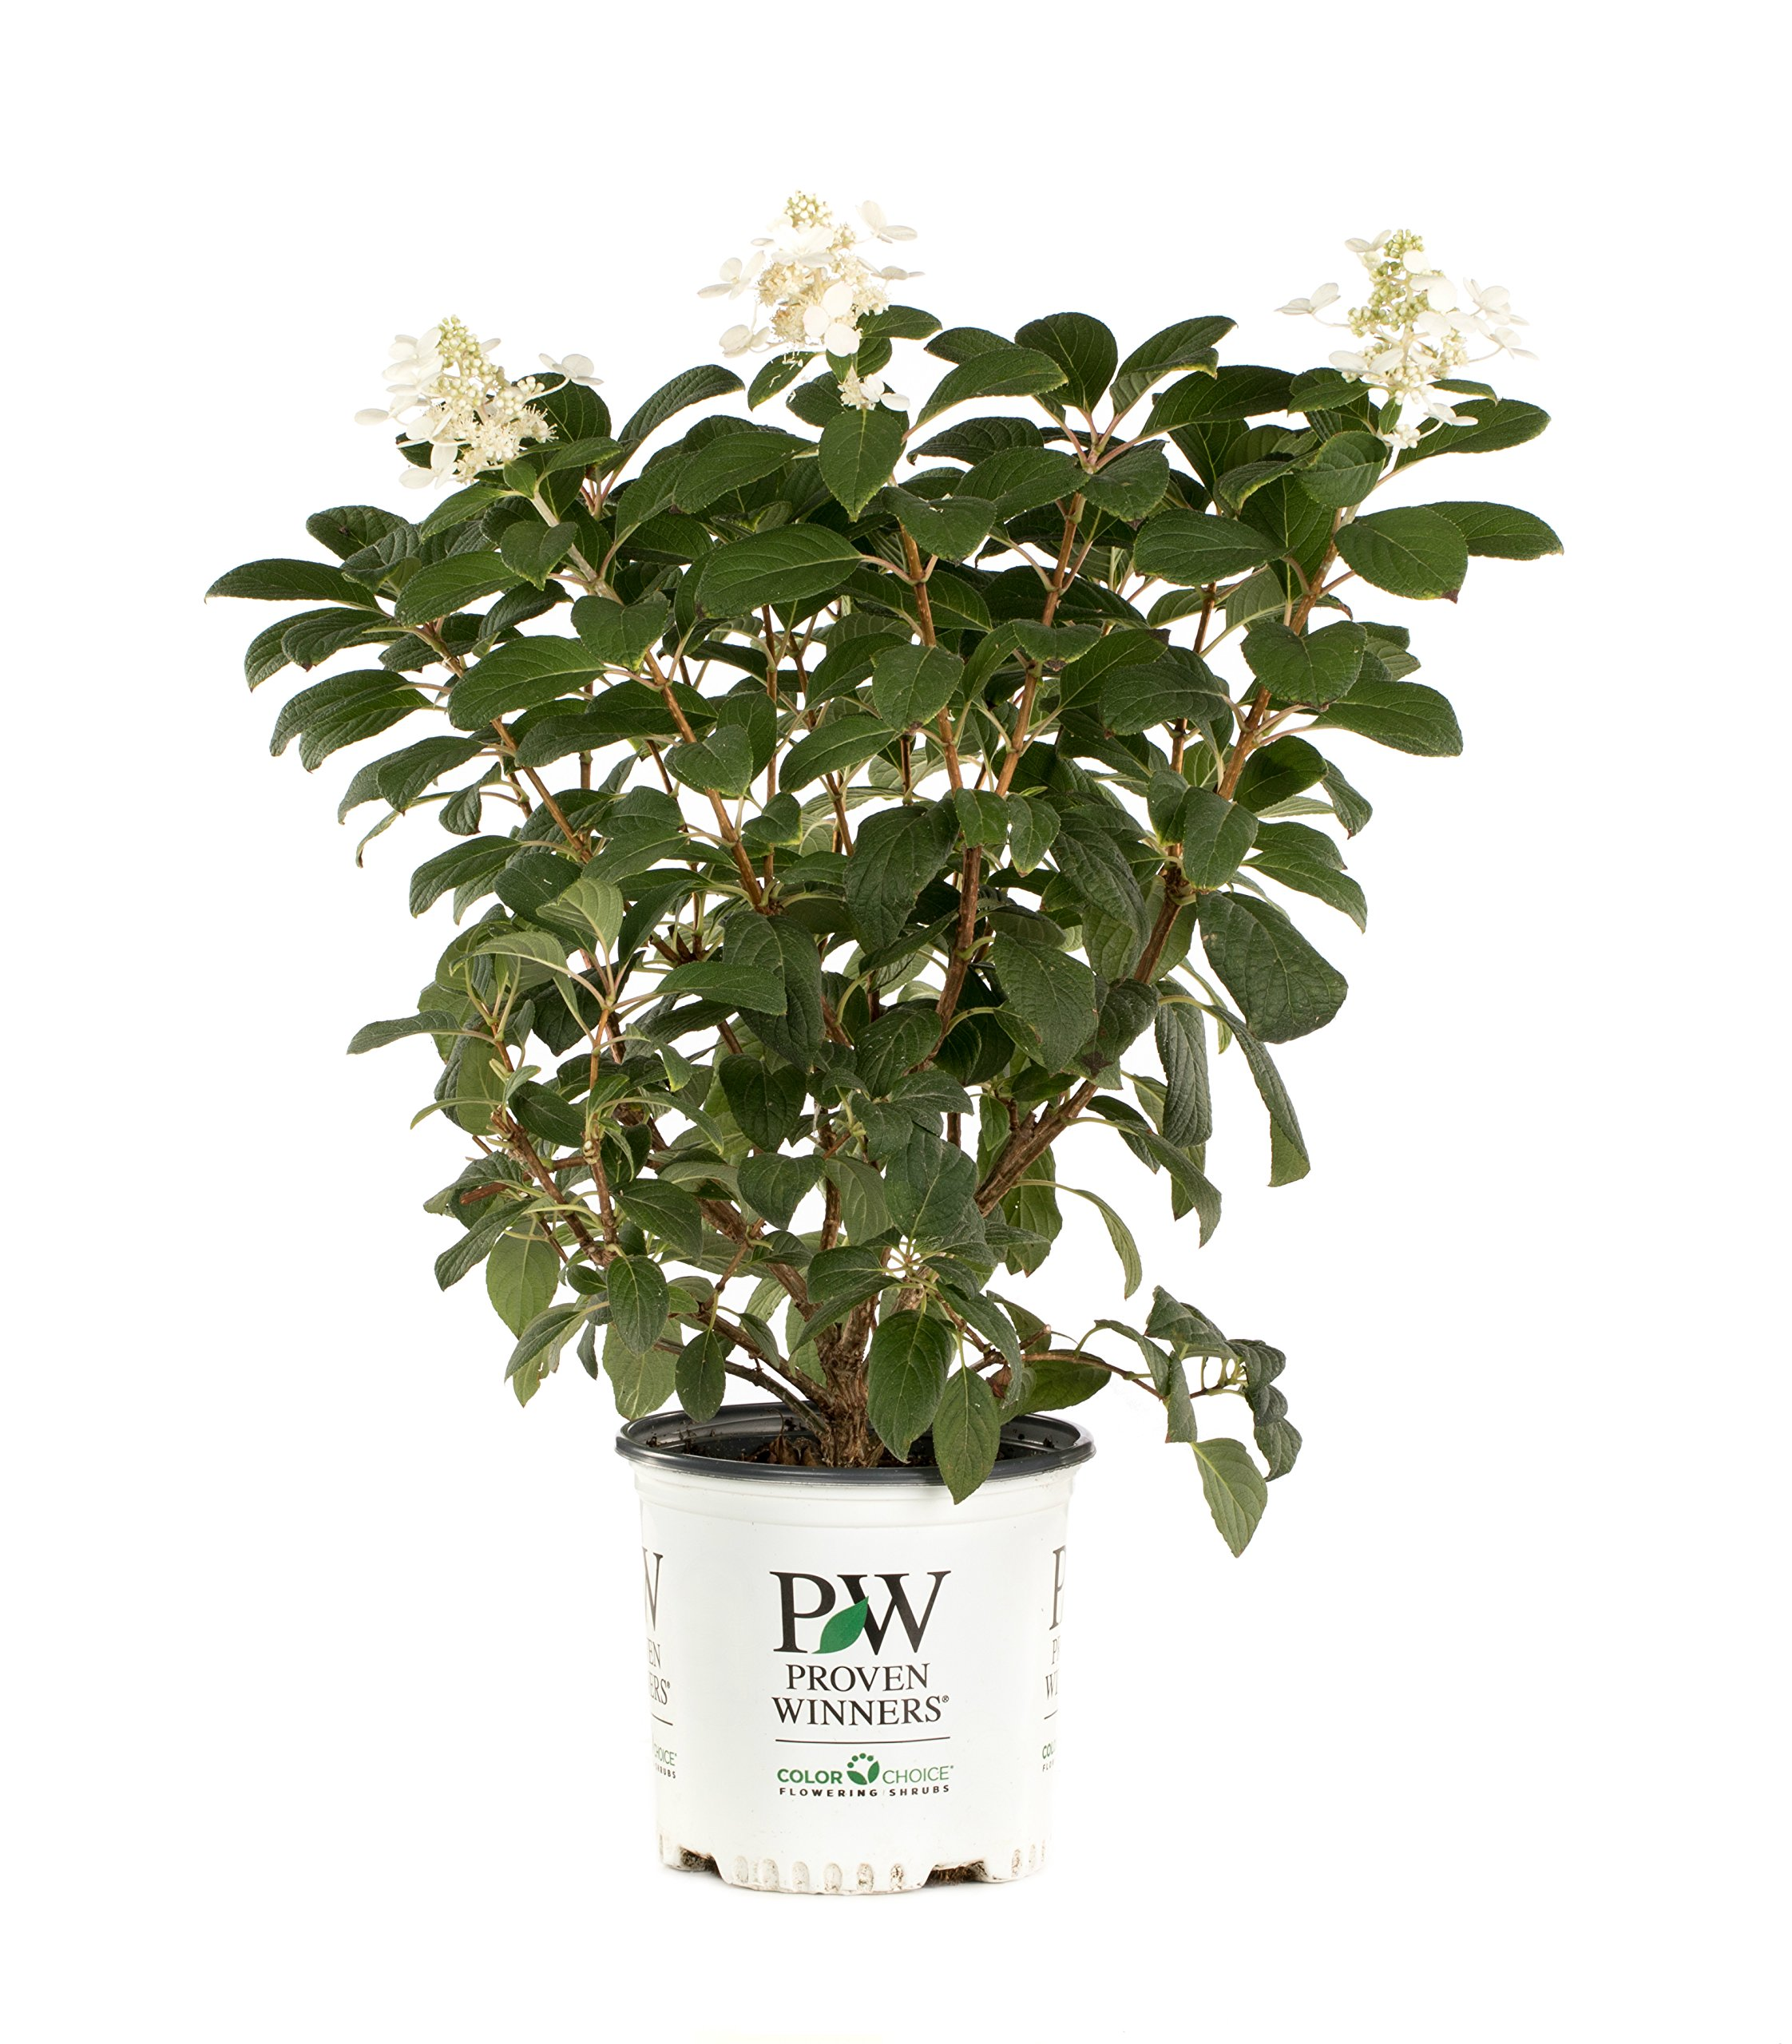 Little Quick Fire Hardy Hydrangea (Paniculata) Live Shrub, White to Pink Flowers, 1 Gallon